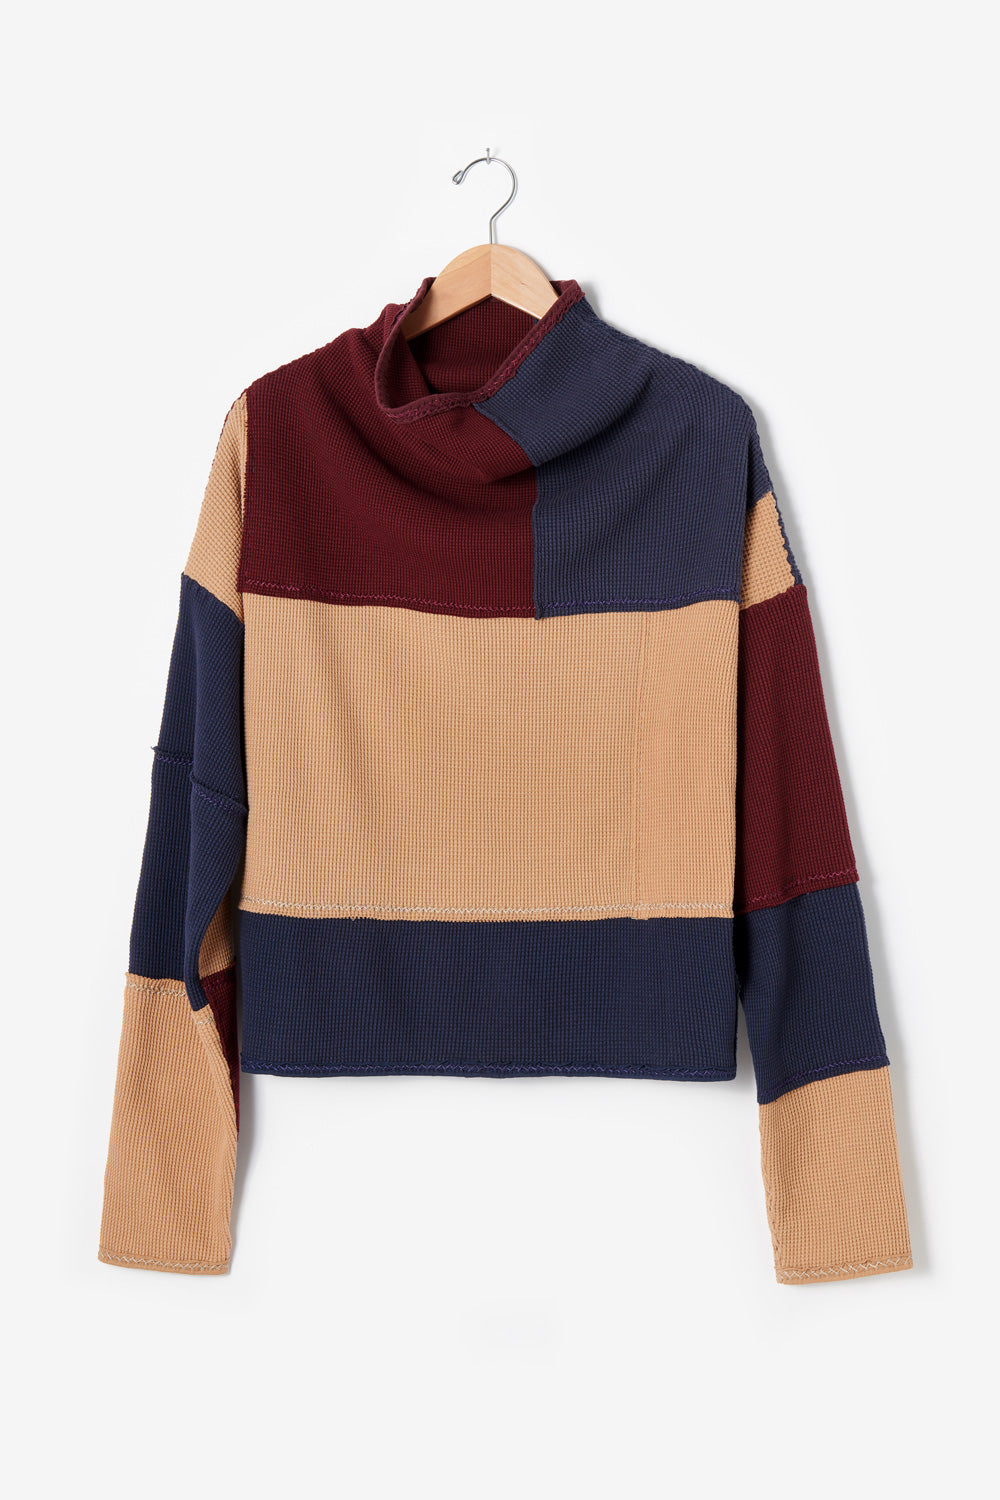 Alabama Chanin Artisan-Designed Zero Waste Waffle Sweatshirt in Camel and Navy Organic Cotton Waffle and Heavy-weight rib in Plum One-of-a-Kind #30460